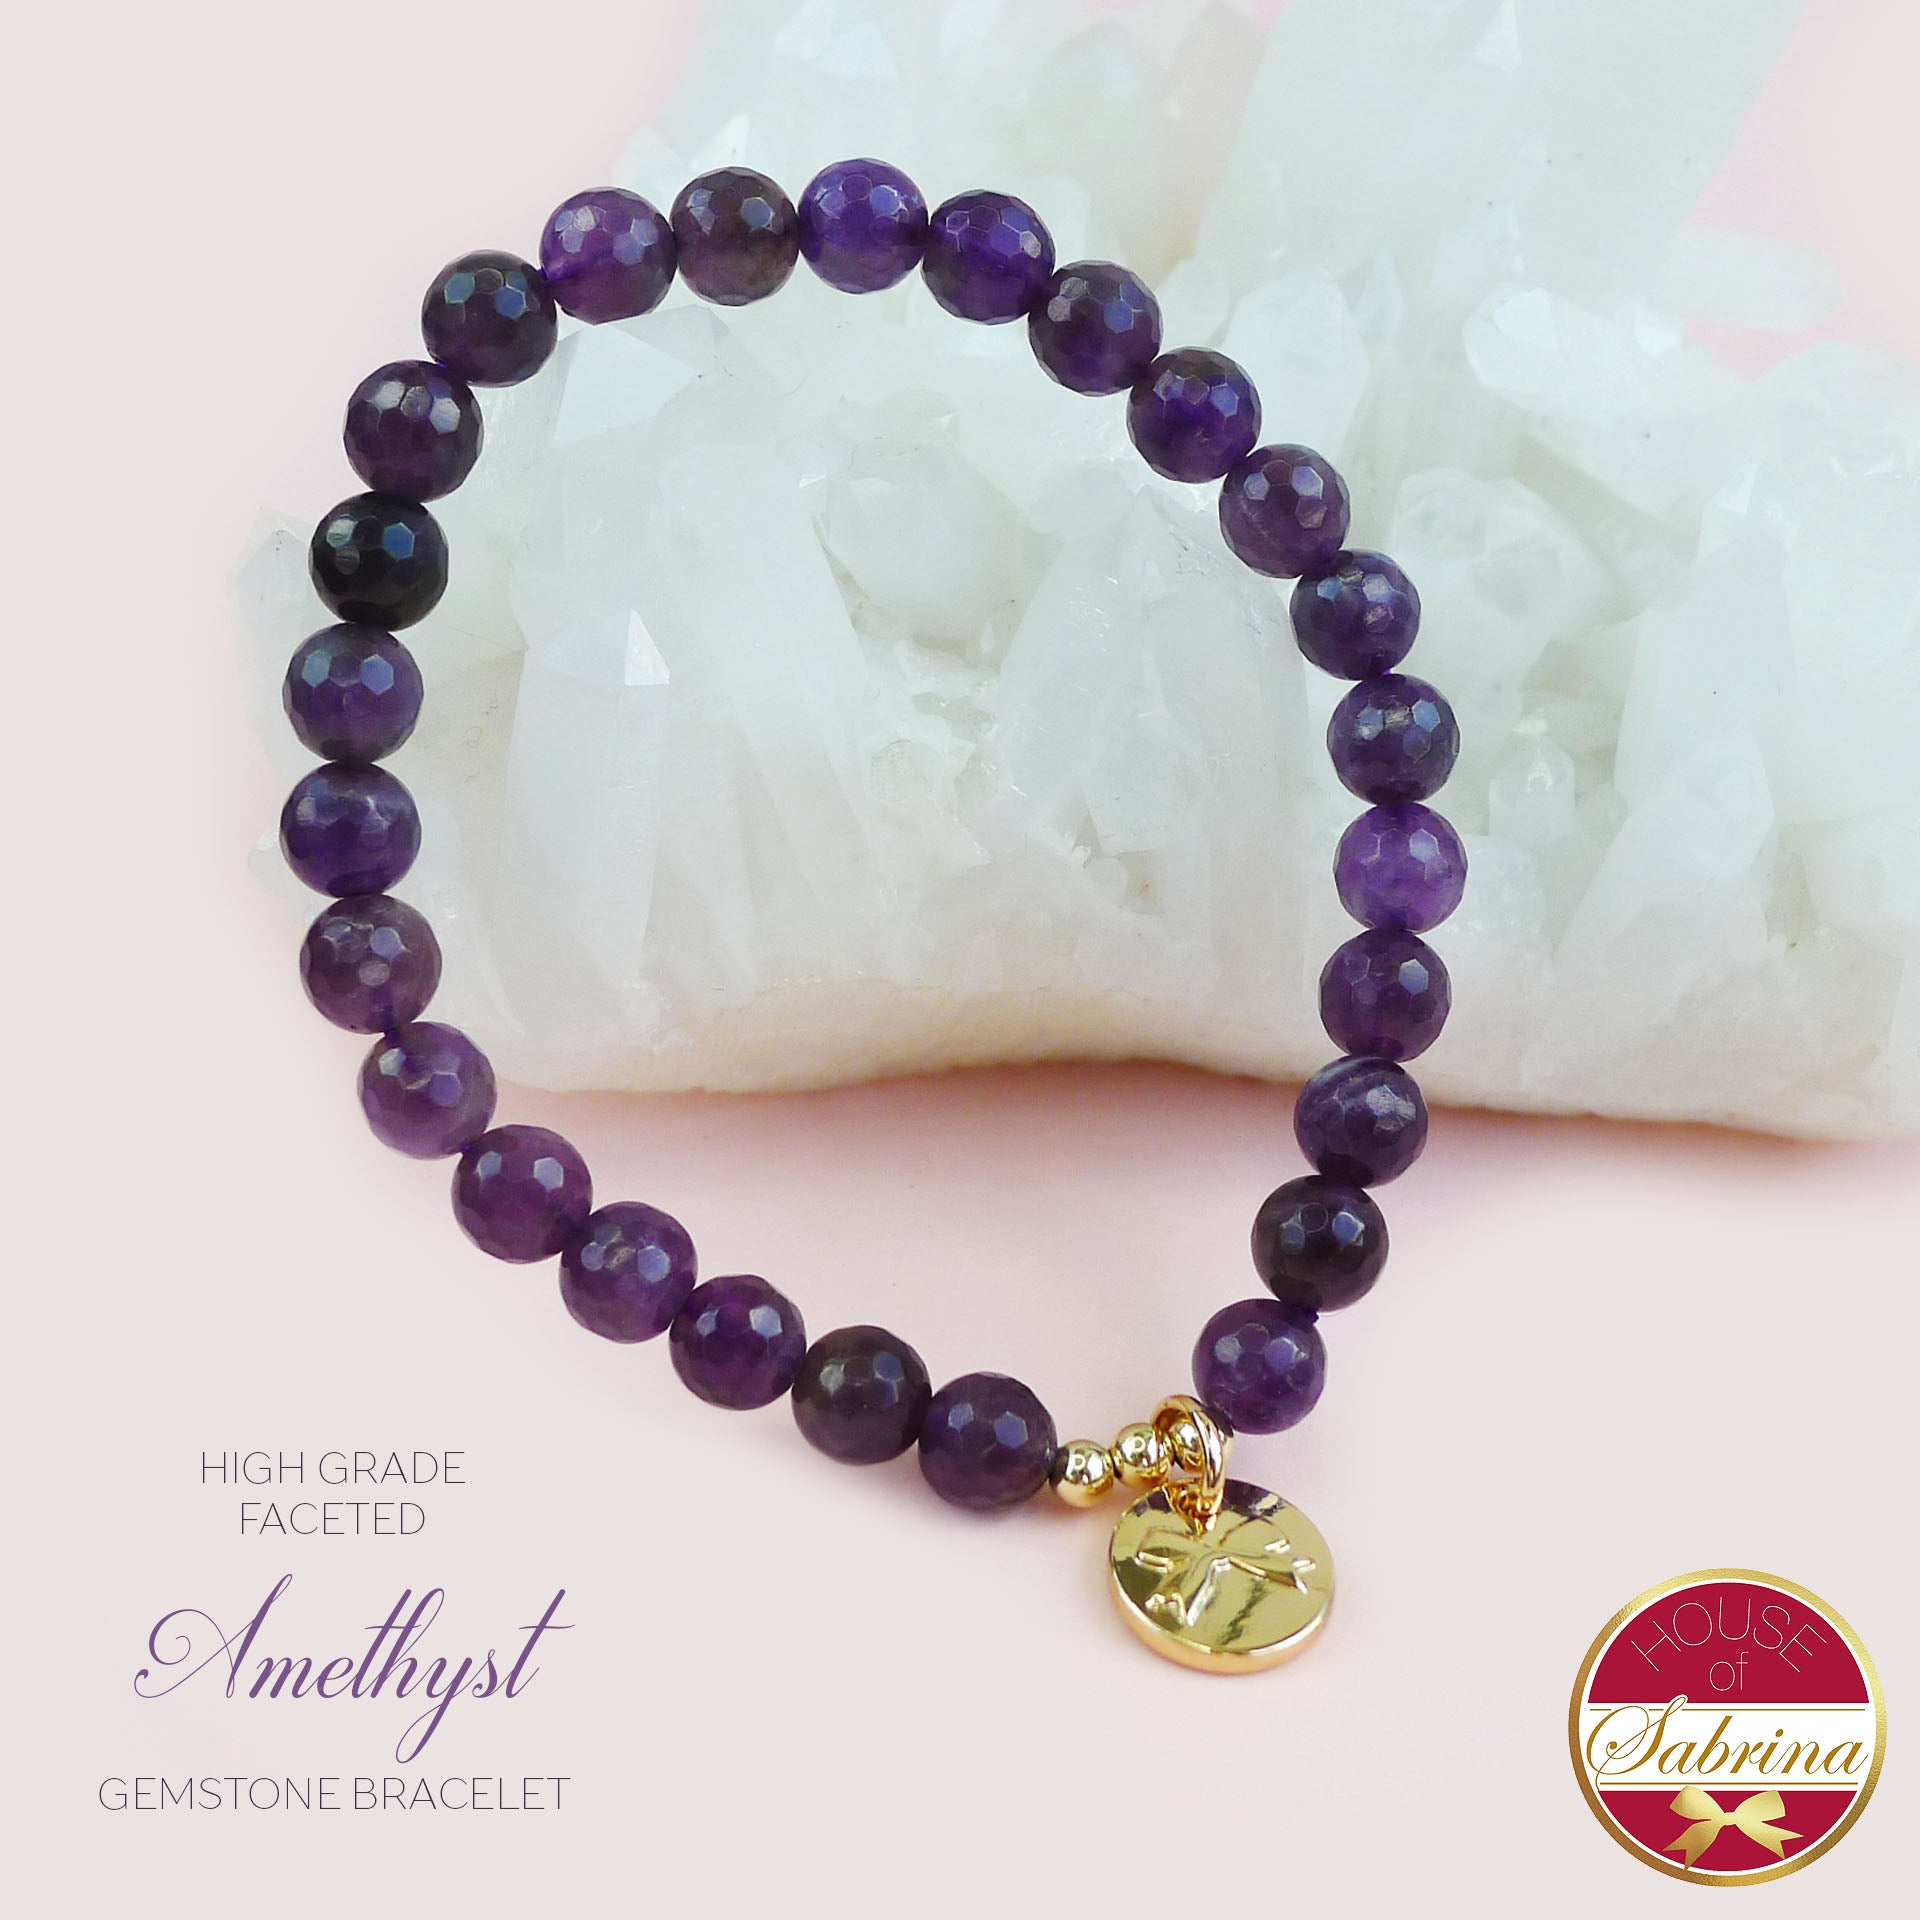 HIGH GRADE FACETED AMETHYST GEMSTONE BRACELET